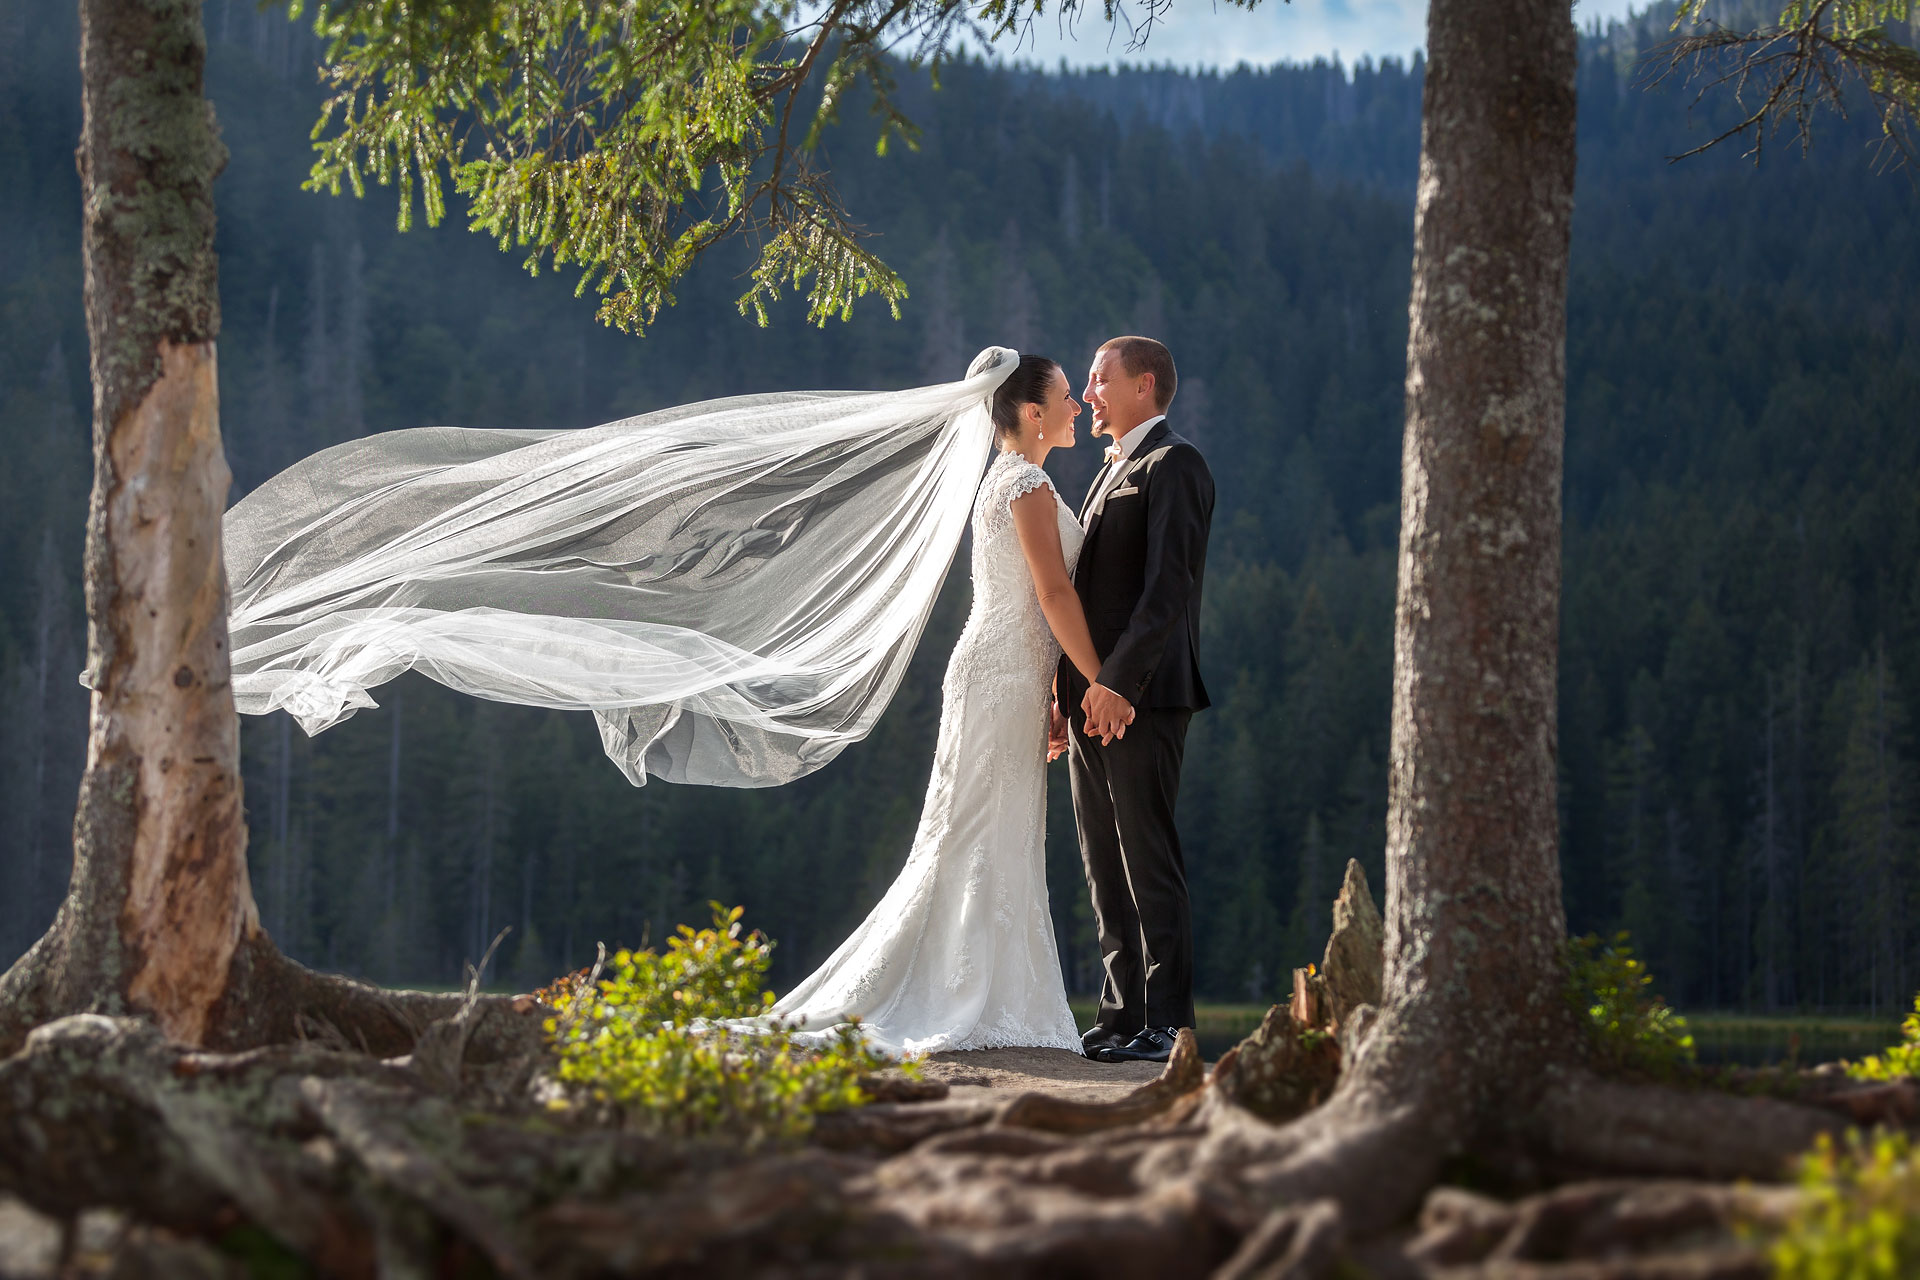 Wedding Photographer / Fotostyle Schindler / Straubing